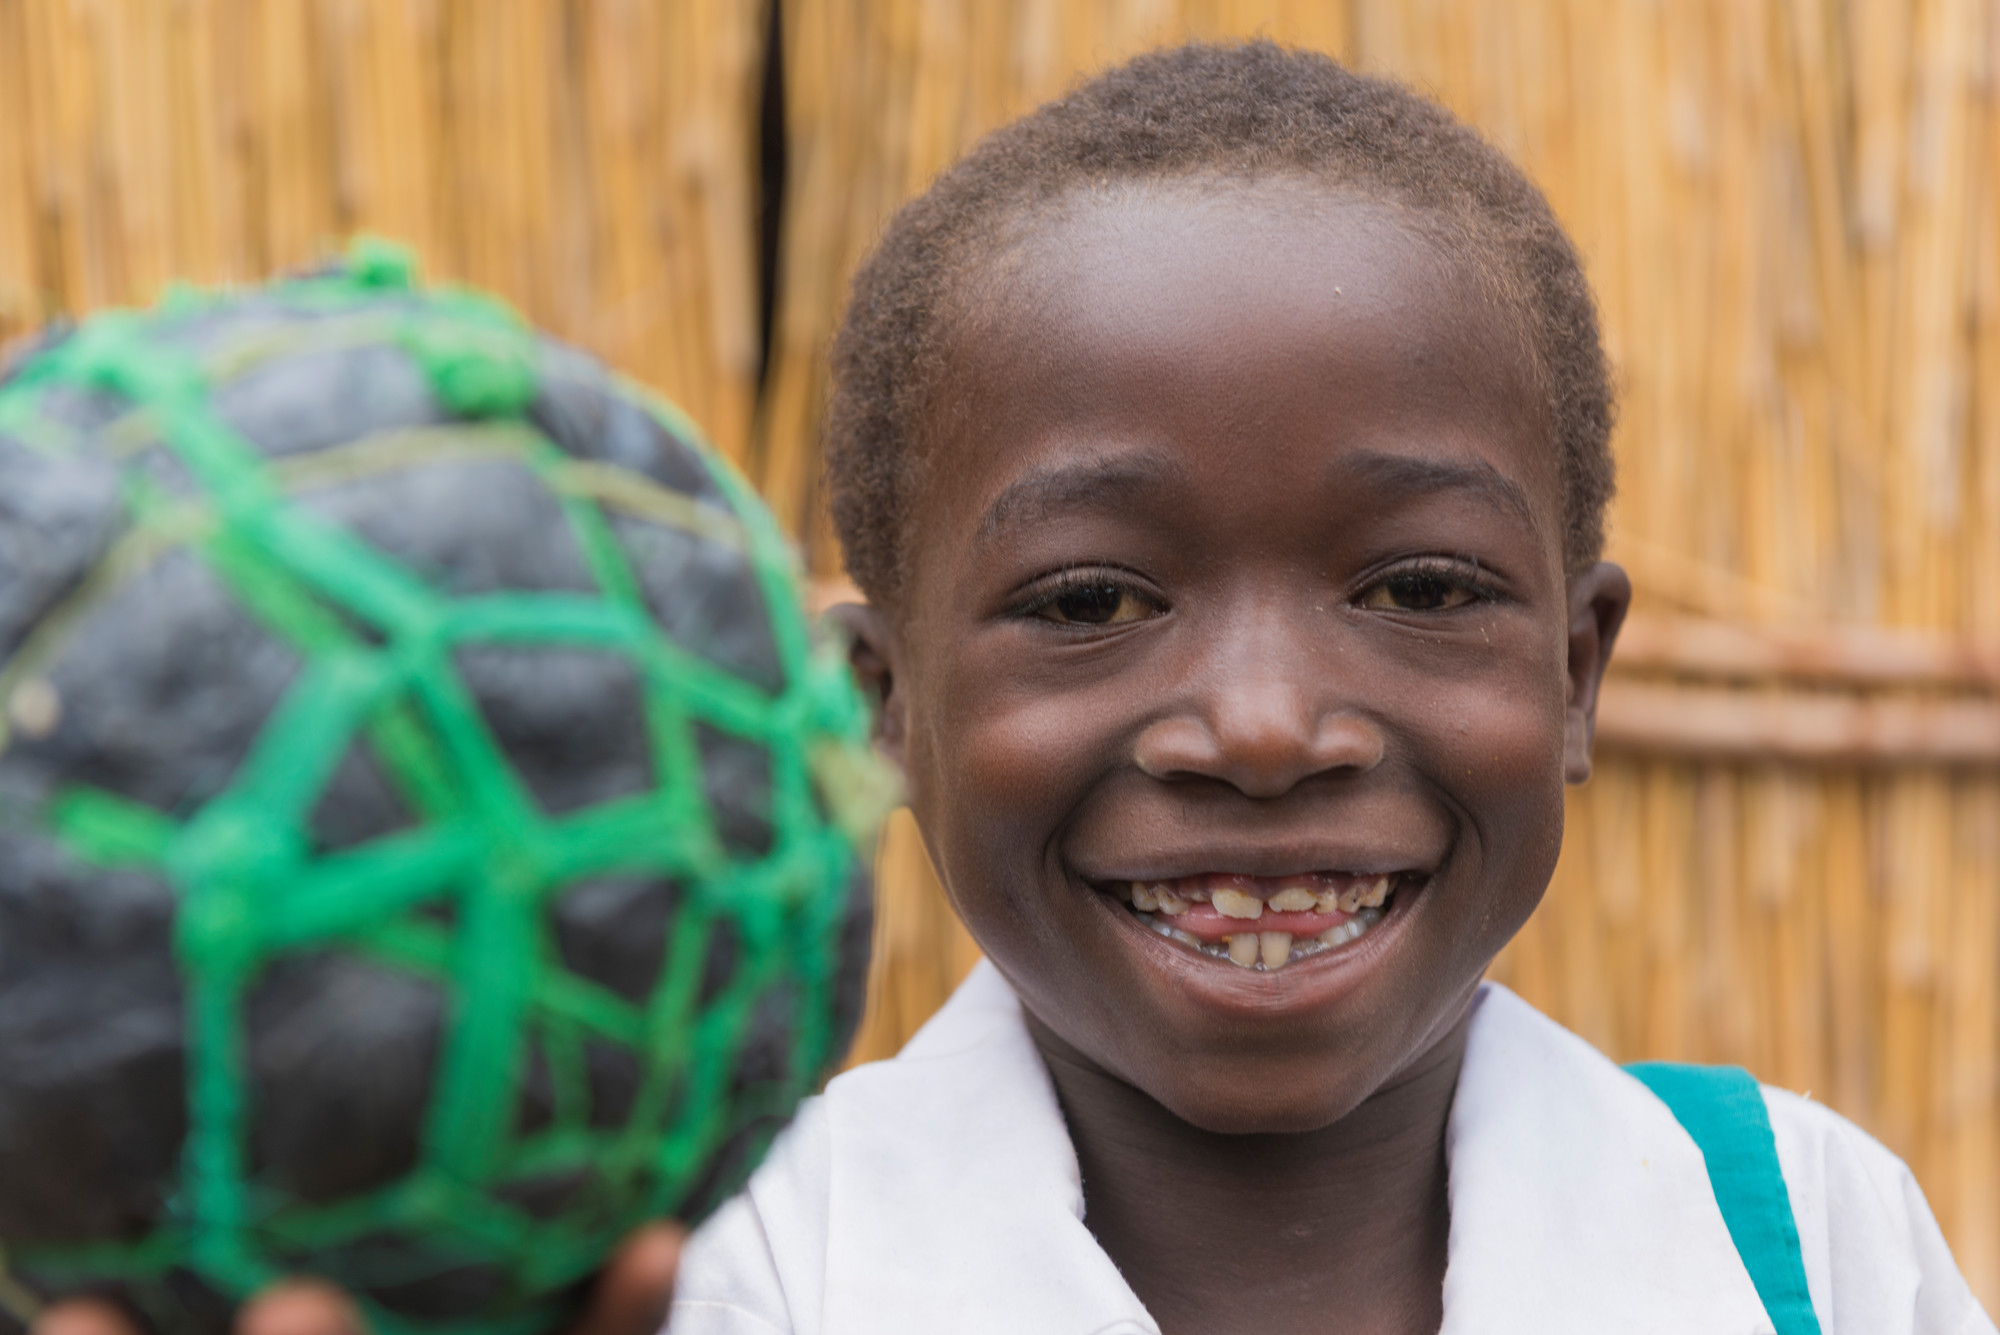 A young girl smiles wile holding an improvised soccer ball made of string and plastic bags.